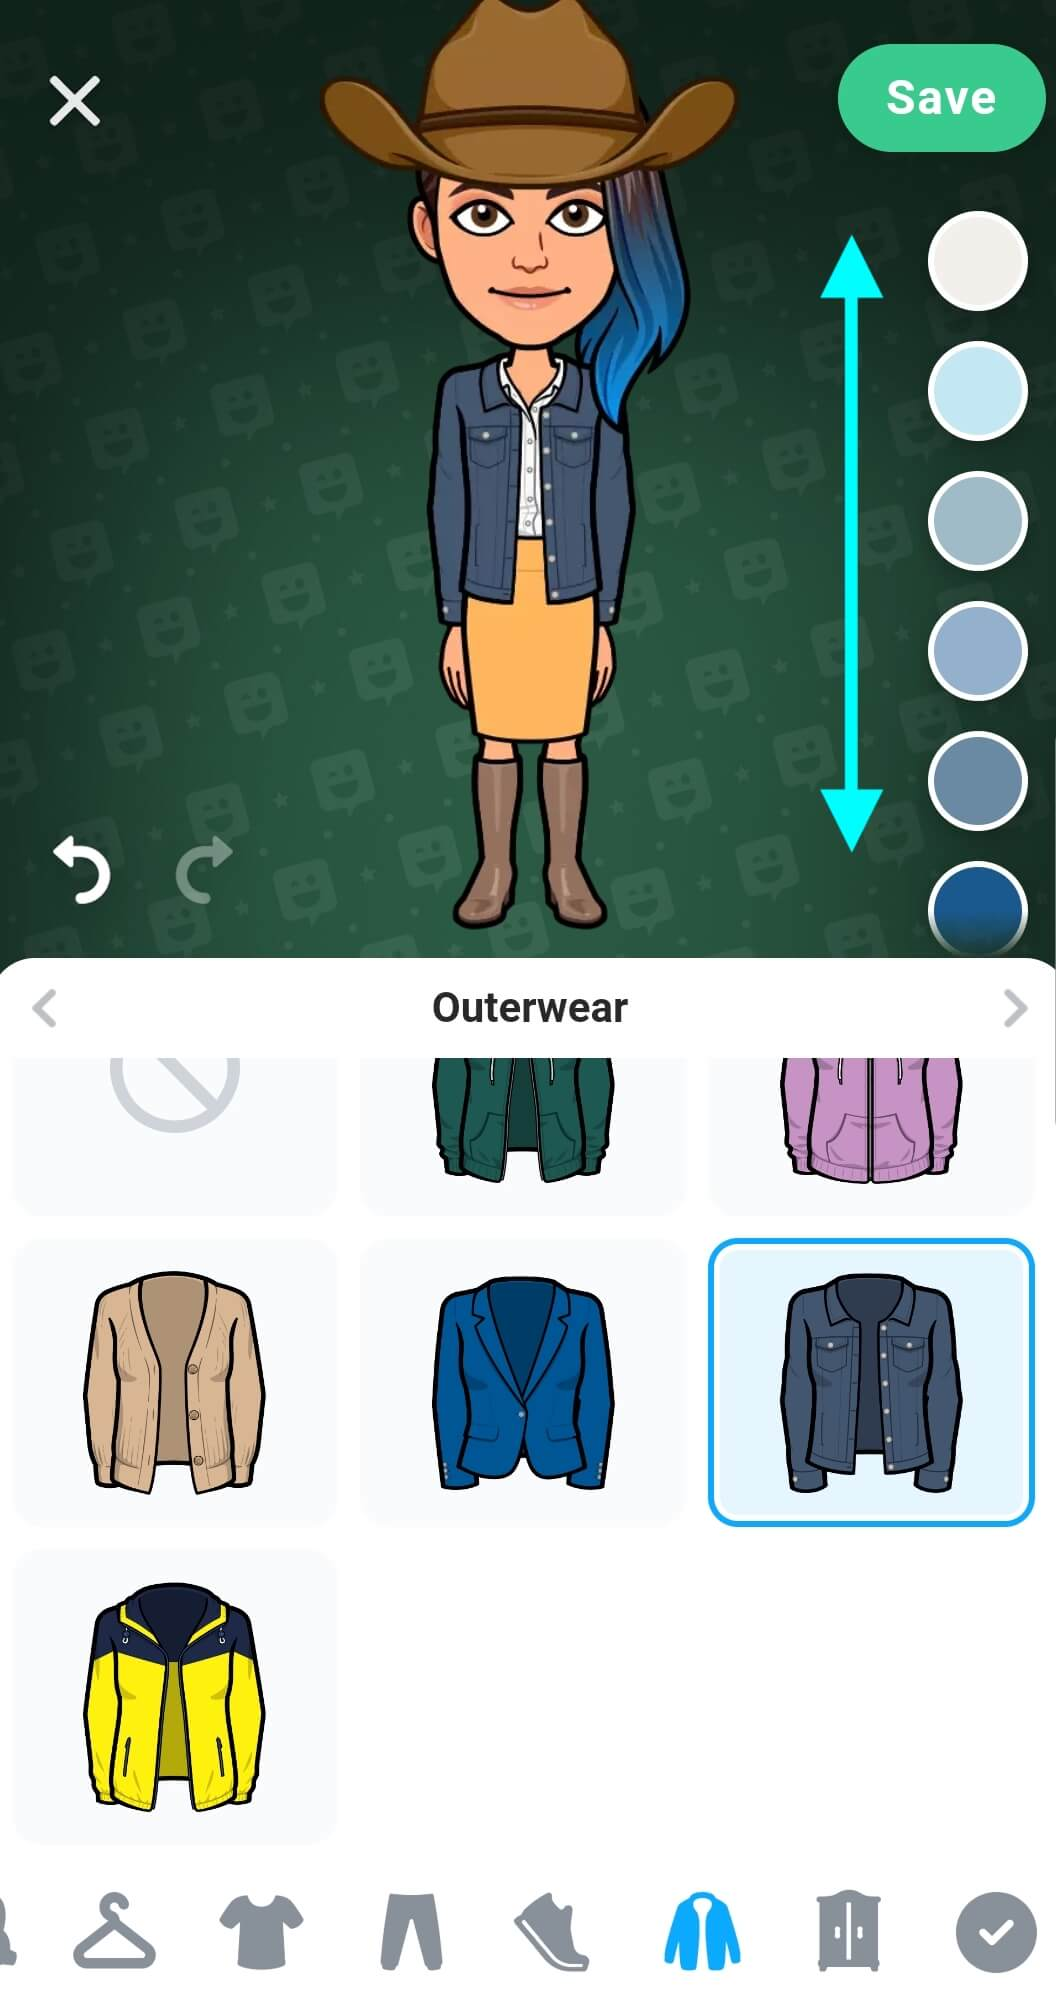 Avatar now wearing a jean jacket over the shirt, the colour palette on the right has arrows indicating to swipe up or down for more colour options